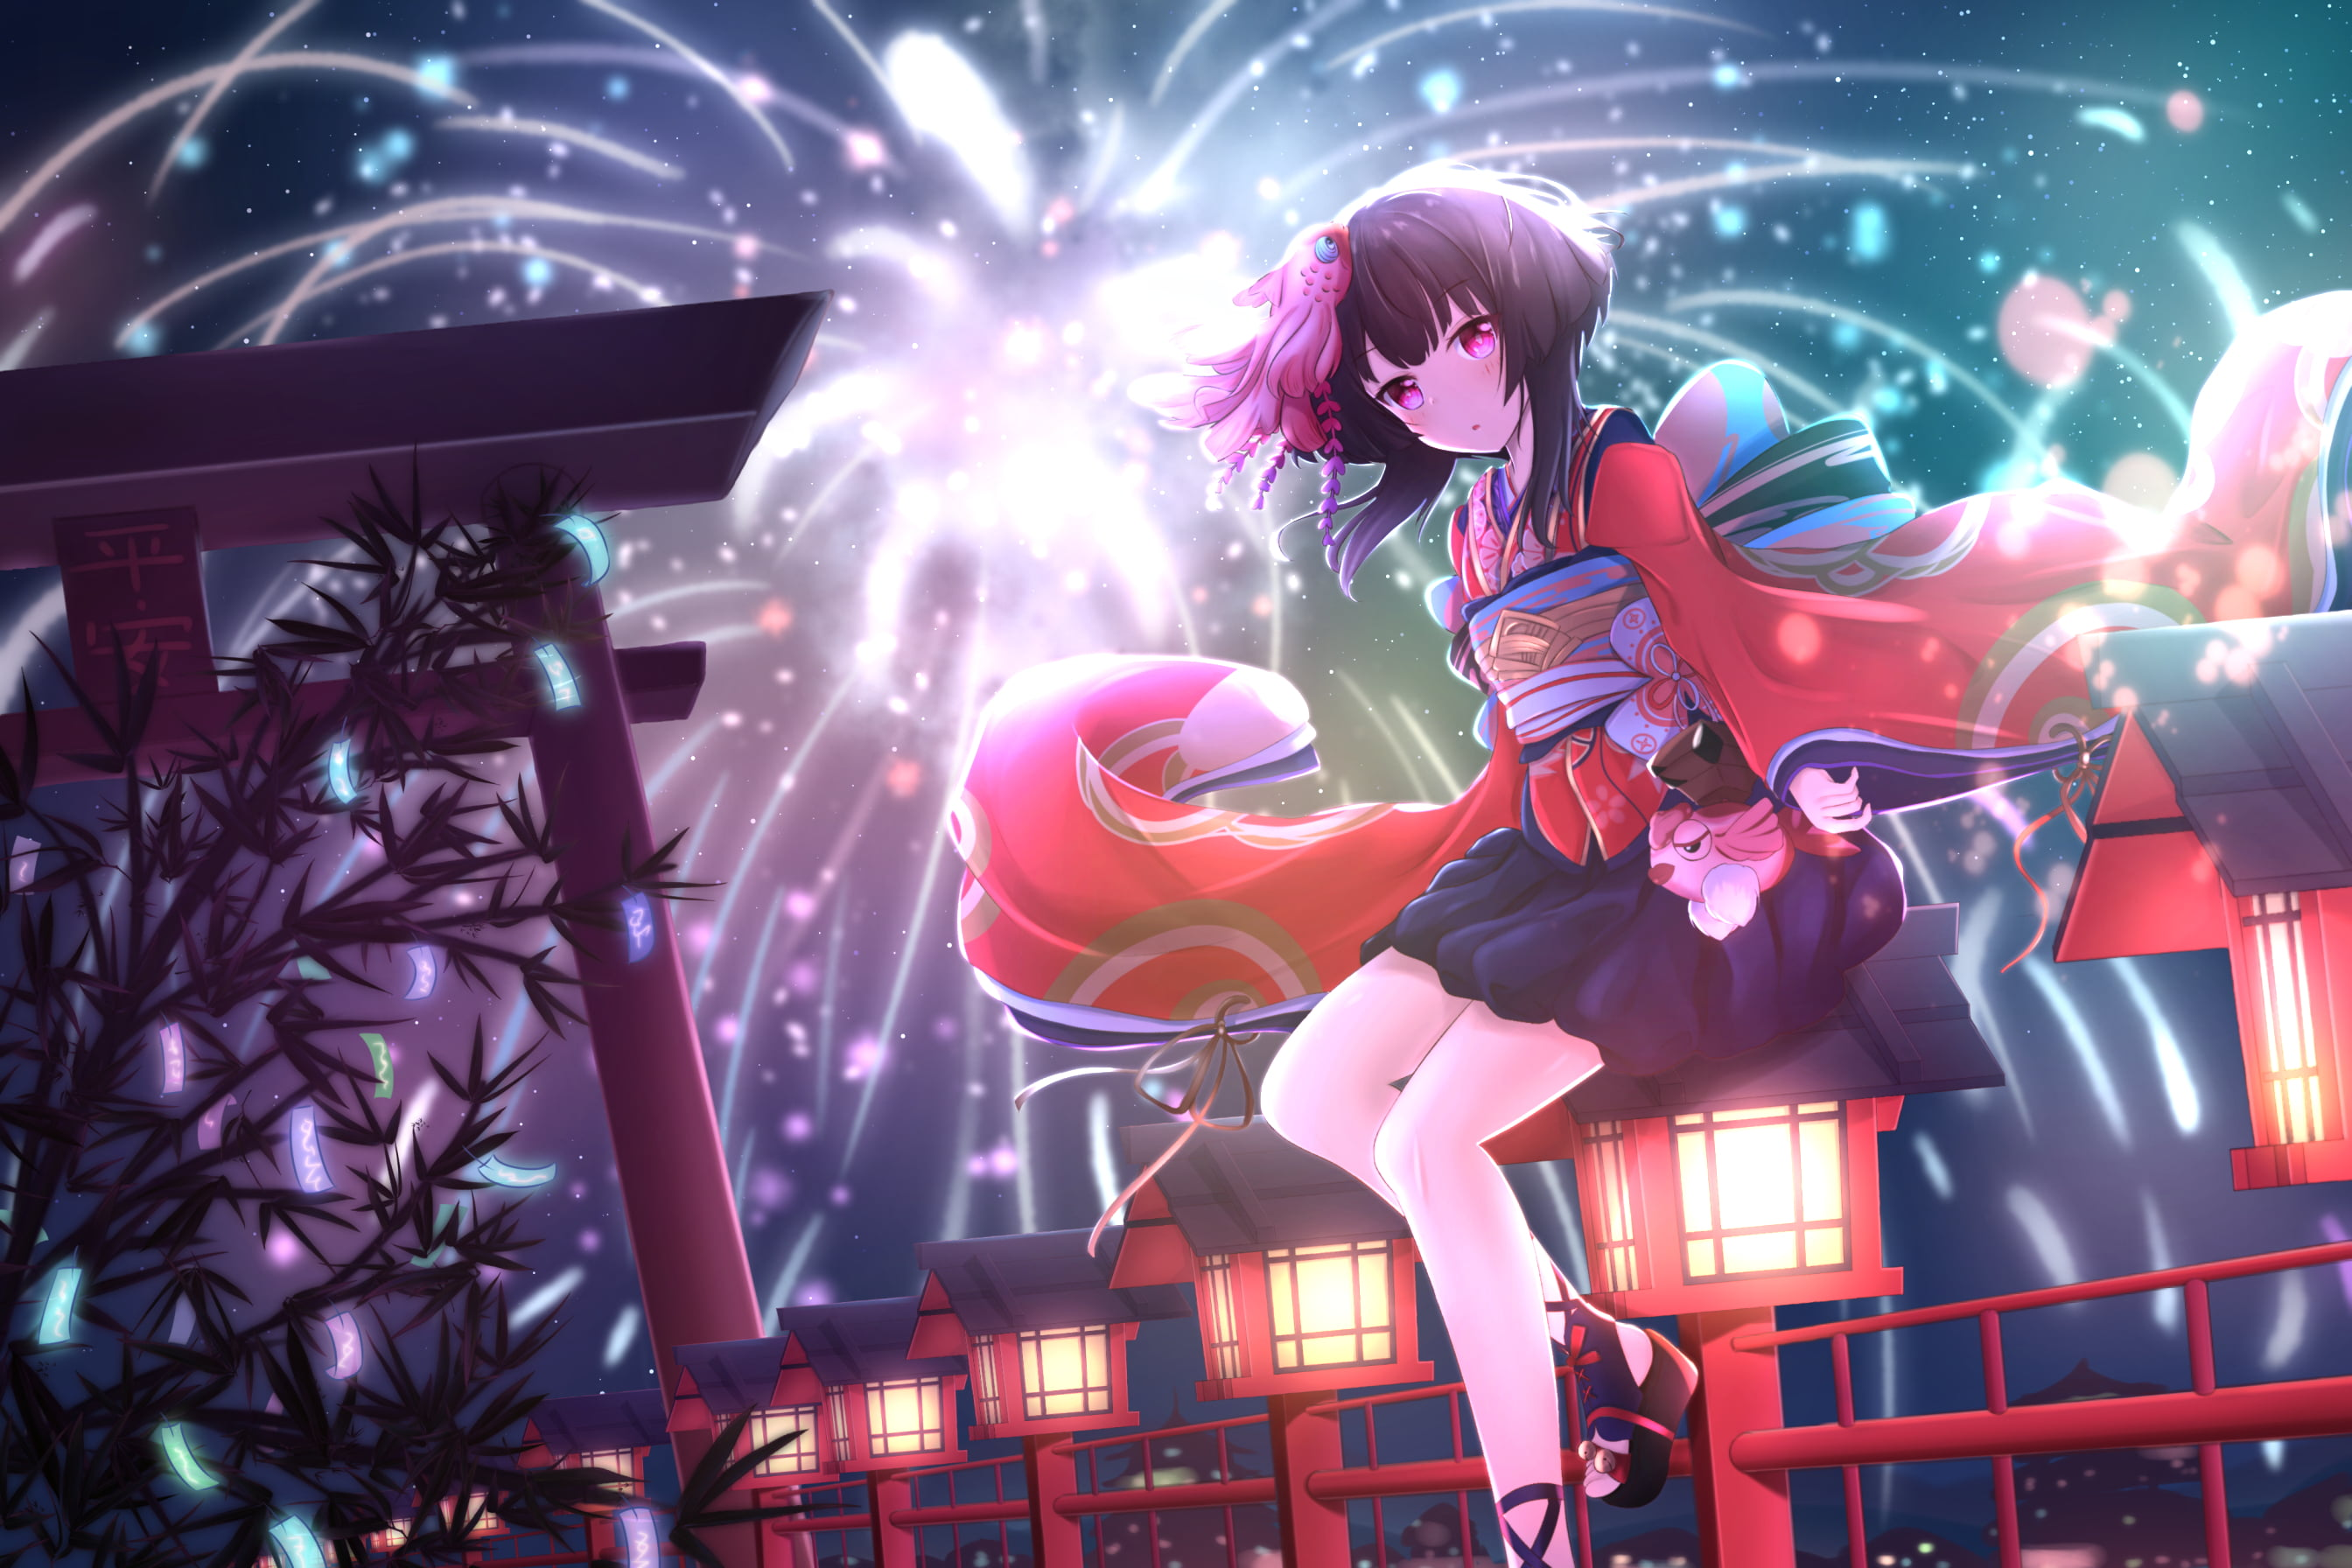 Wallpaper New Year Anime